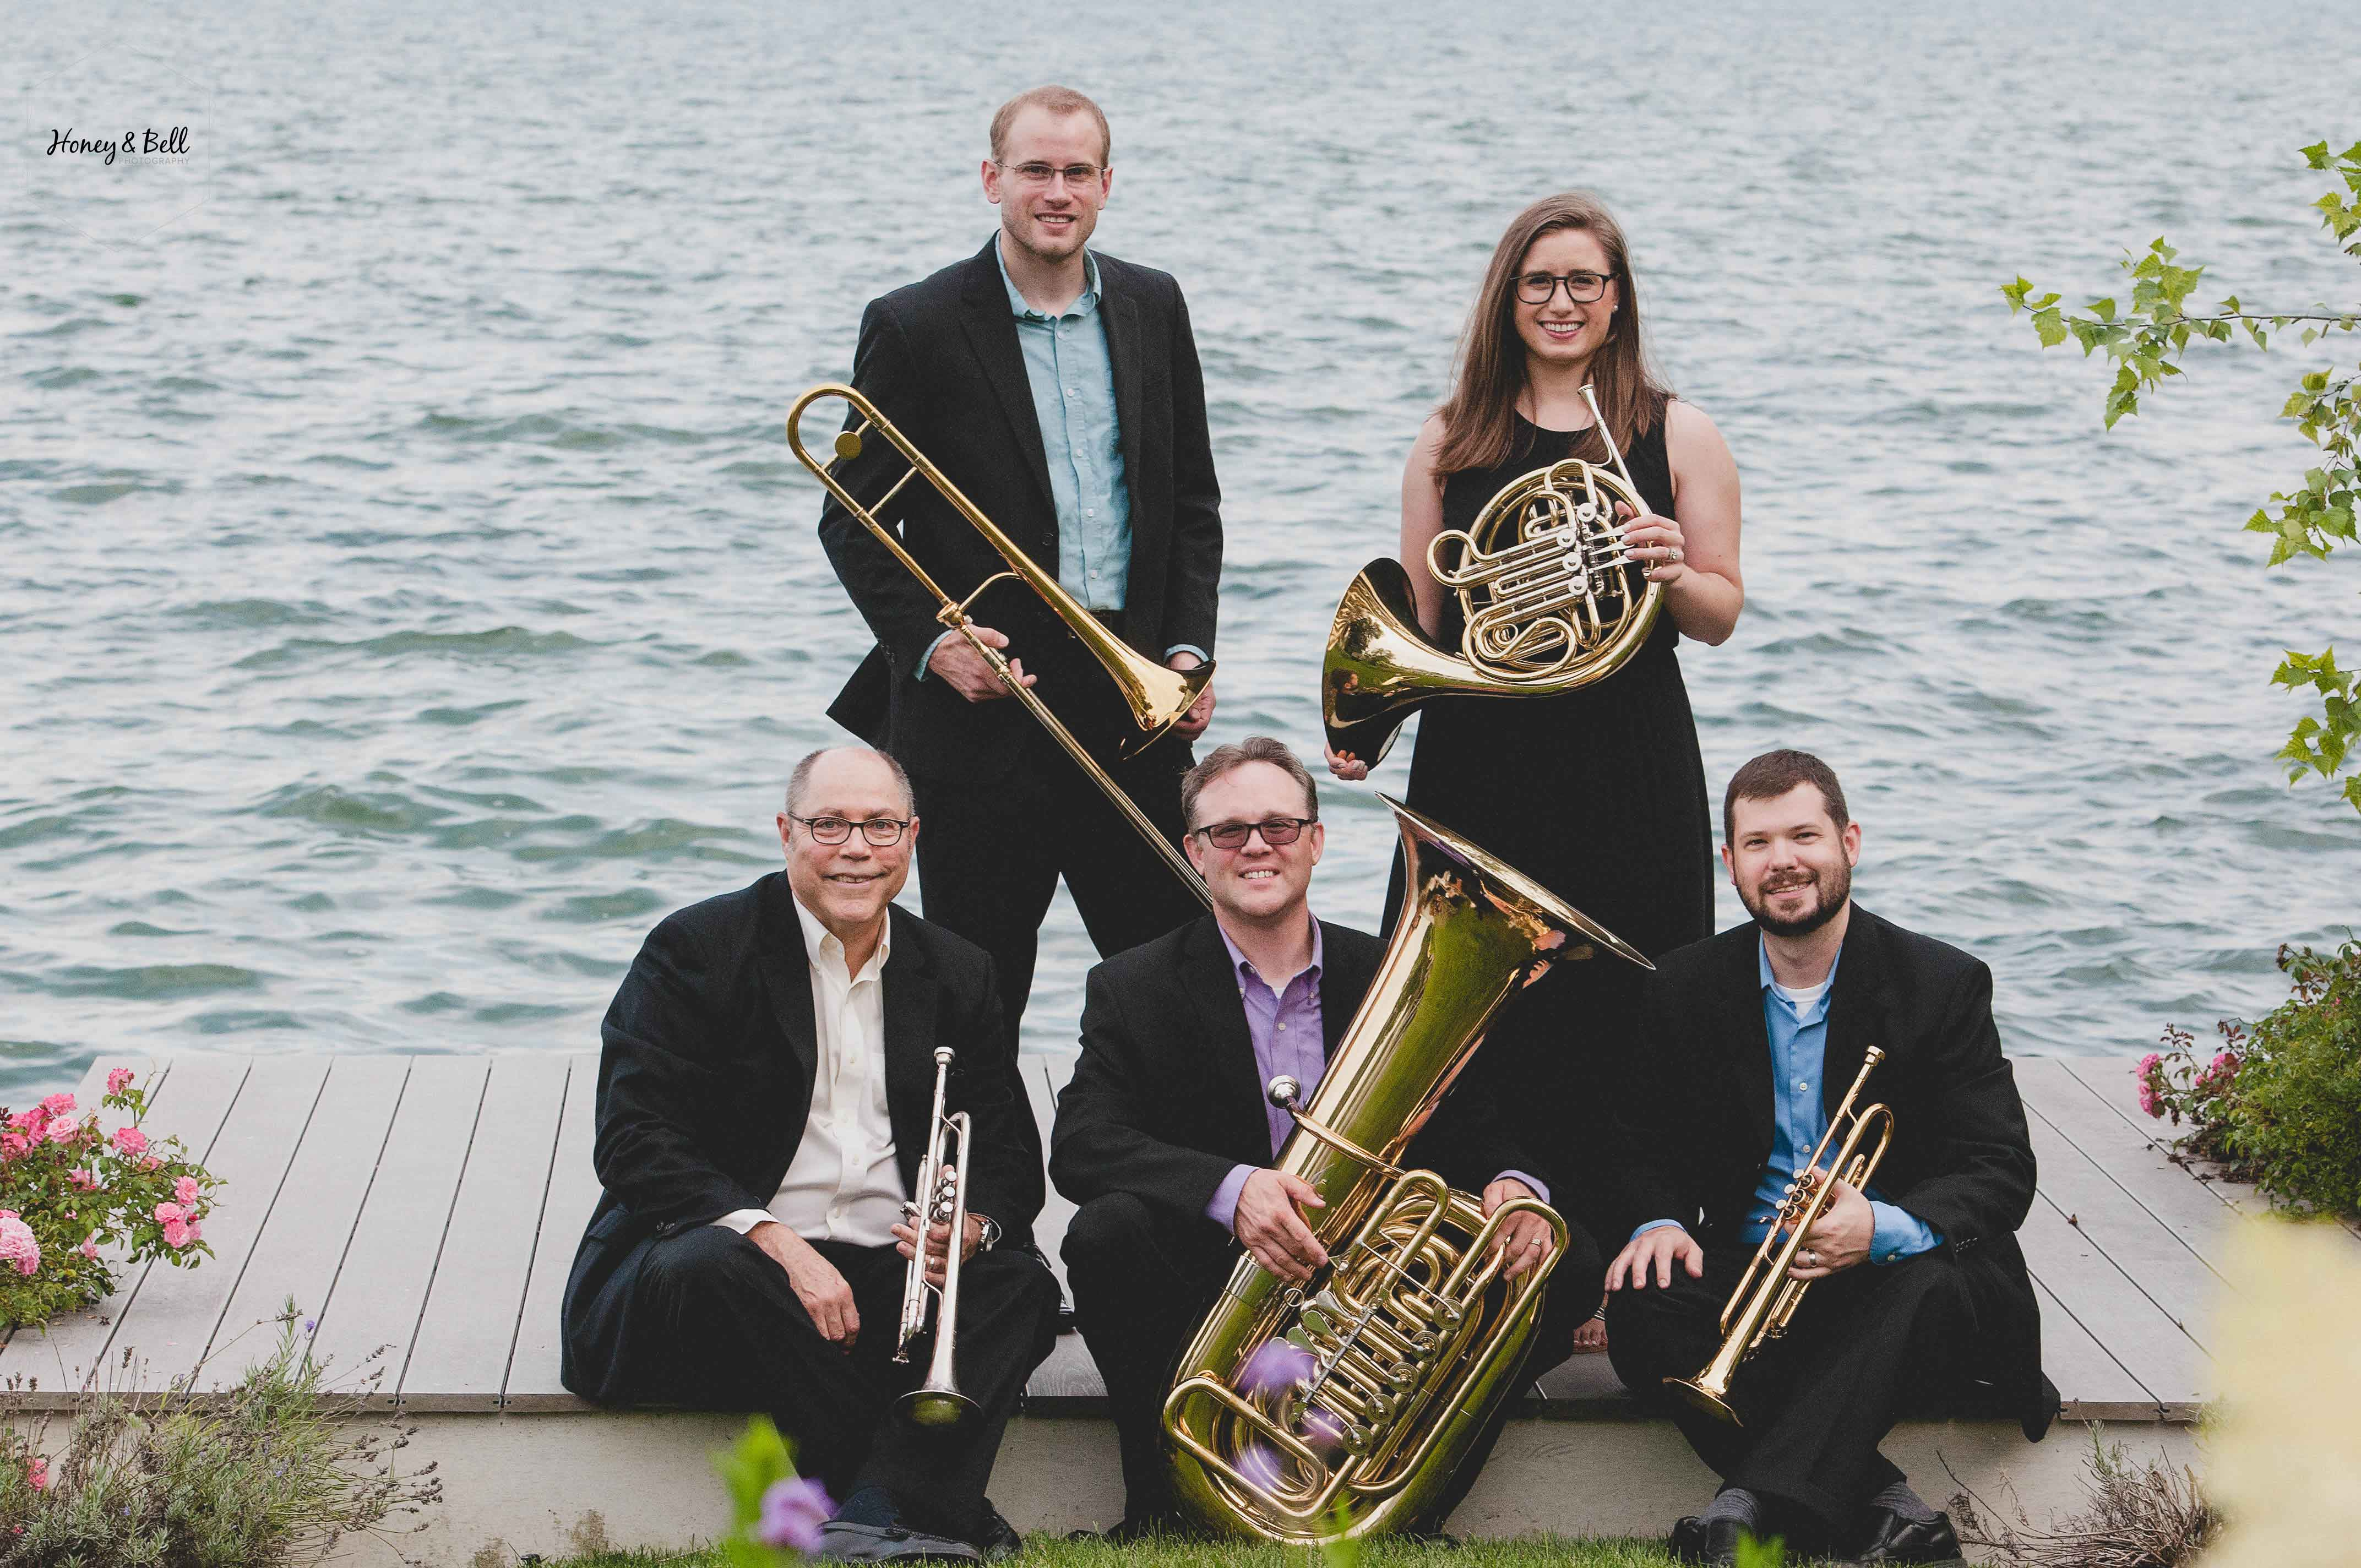 north-of-canada-brass-quintet-detroit-michigan-grosse-pointe-band-photographer-03